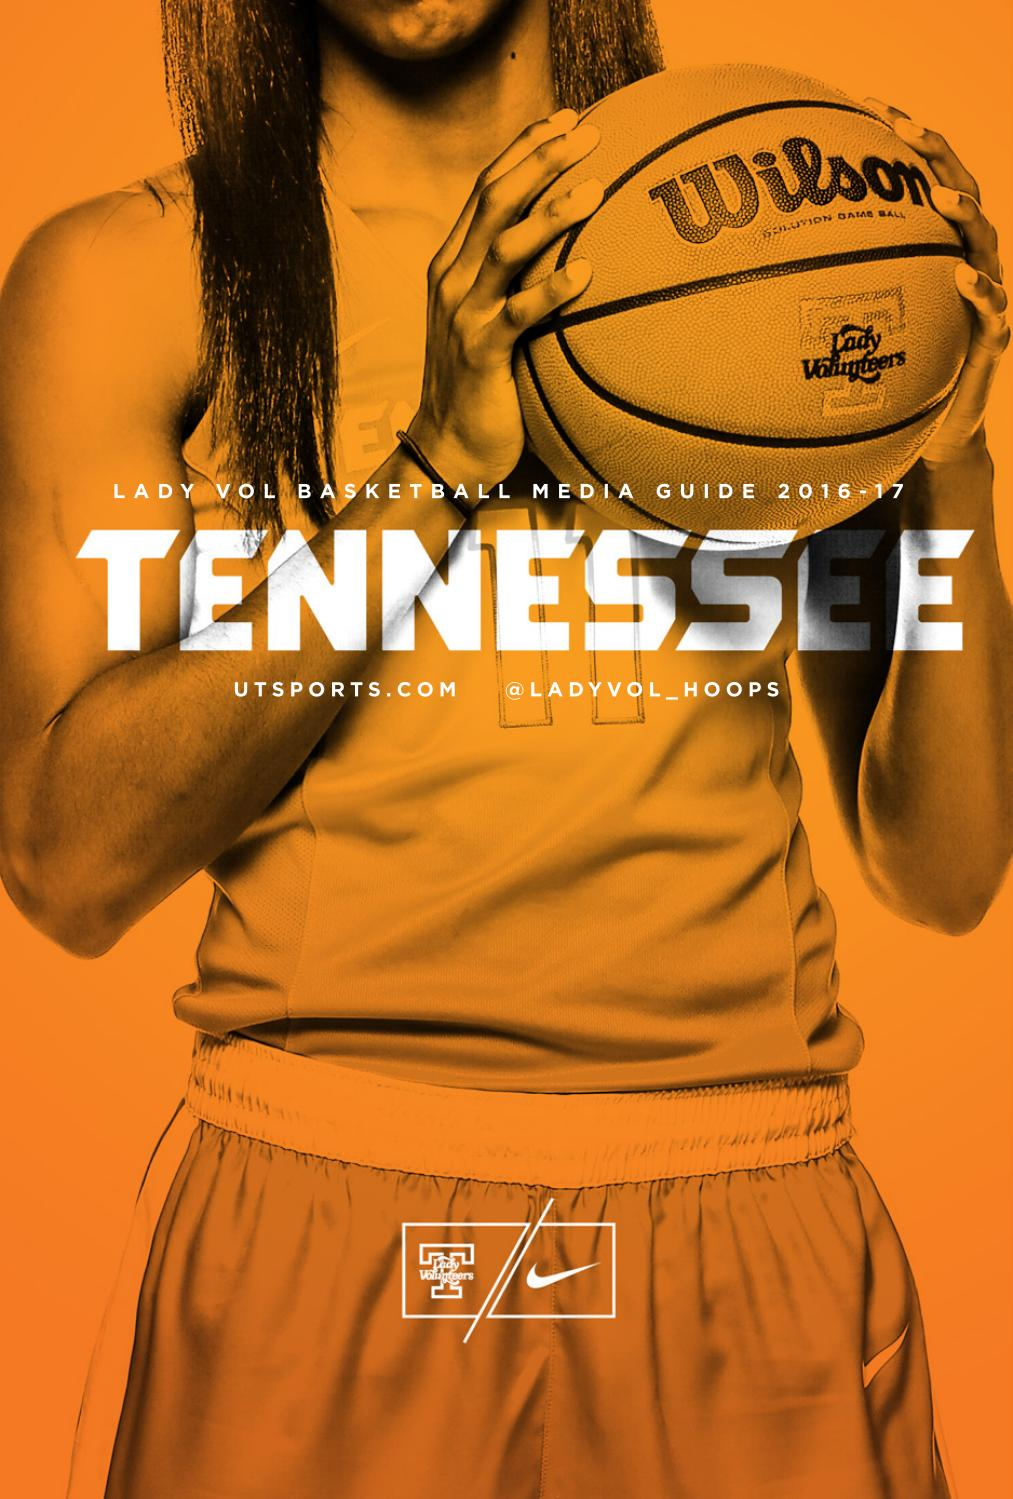 610ba99843417 2016-17 Lady Vol Basketball Media Guide by The University of ...